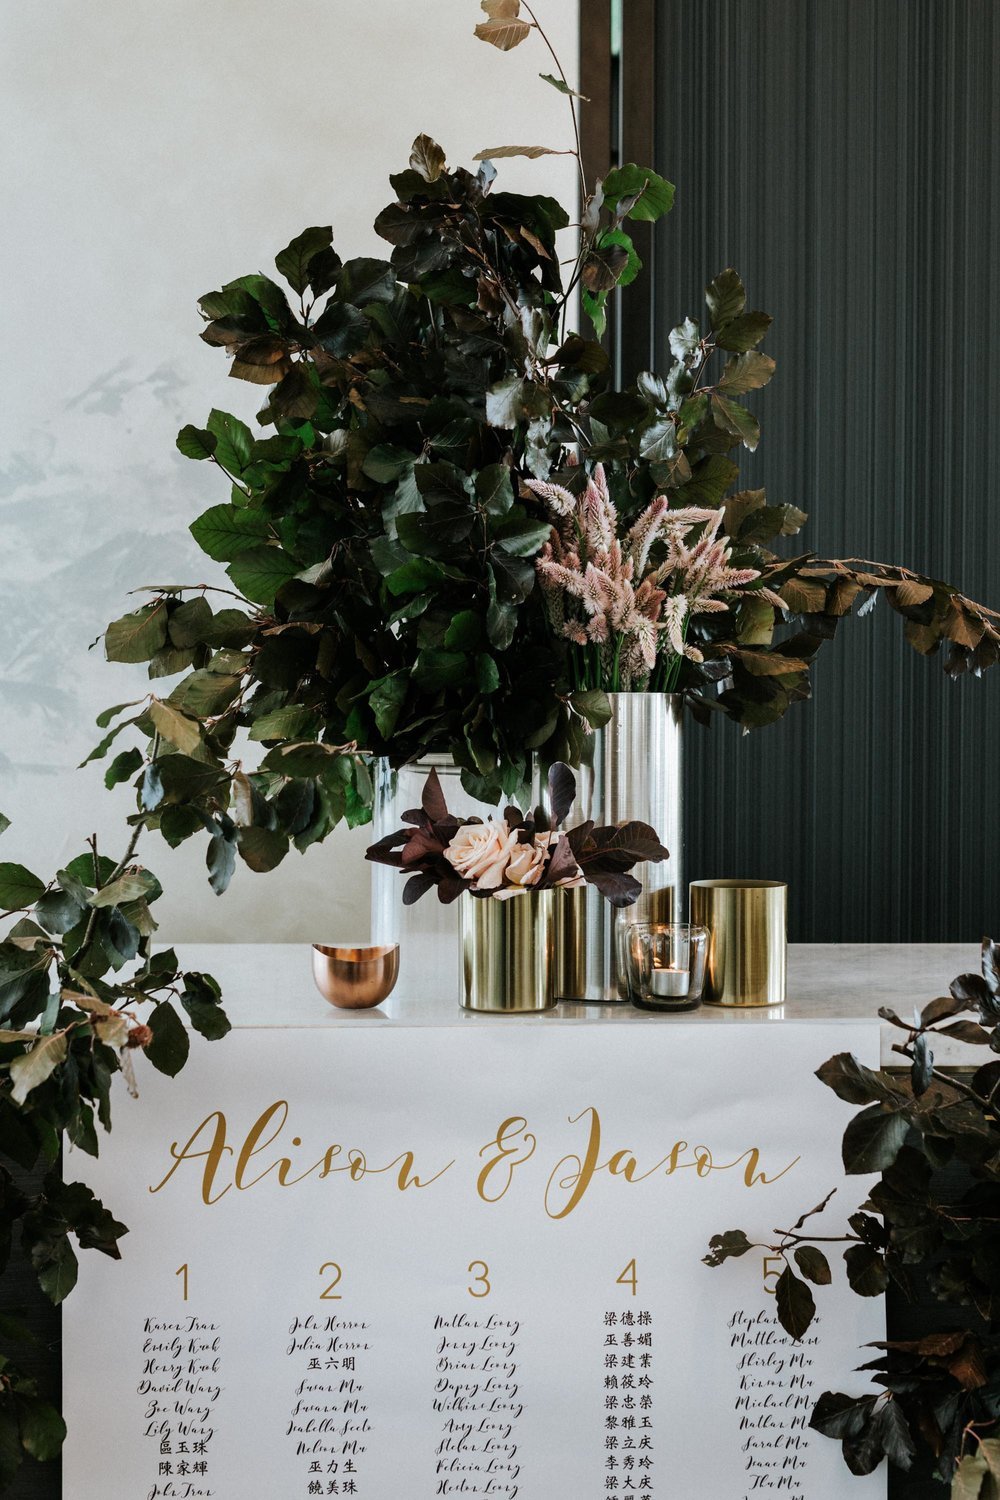 wedding planning wedding styling melbourne wedding planner melbourne wedding stylist melbourne events planner events melbourne event planning styling